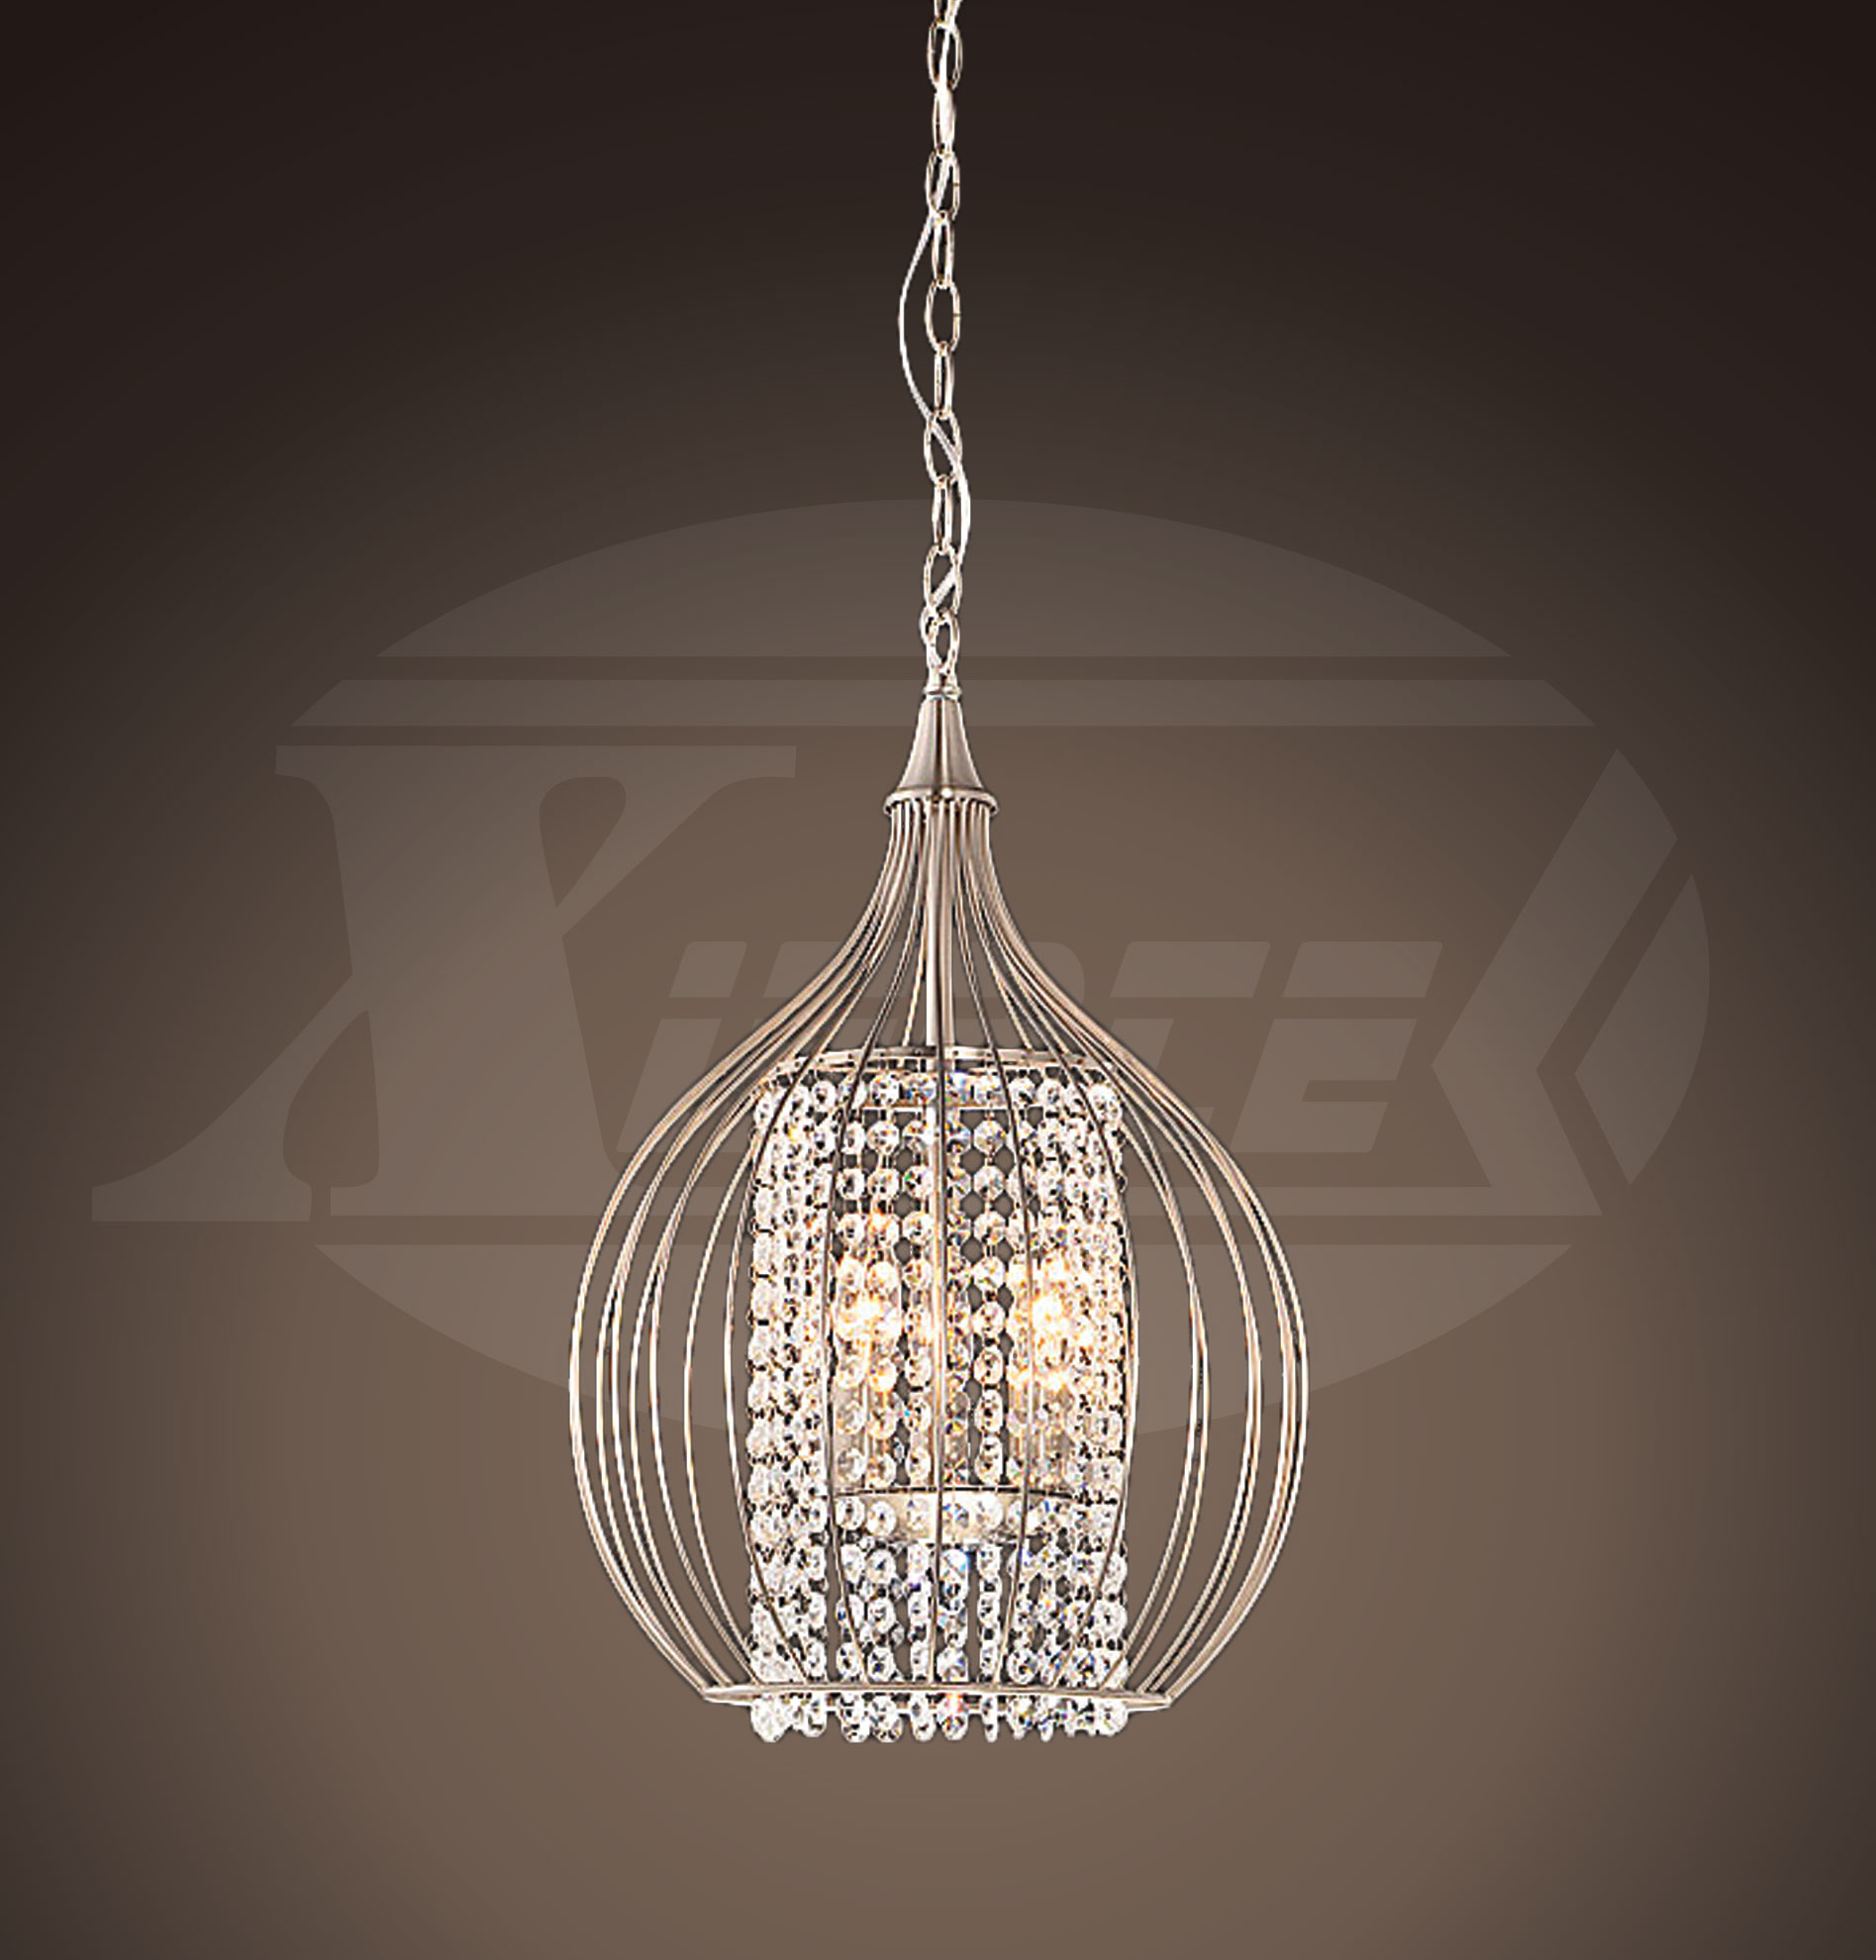 Home page helina chrome and crystal 4 light round ceiling flush mount chandelier 16hx17 w arubaitofo Gallery